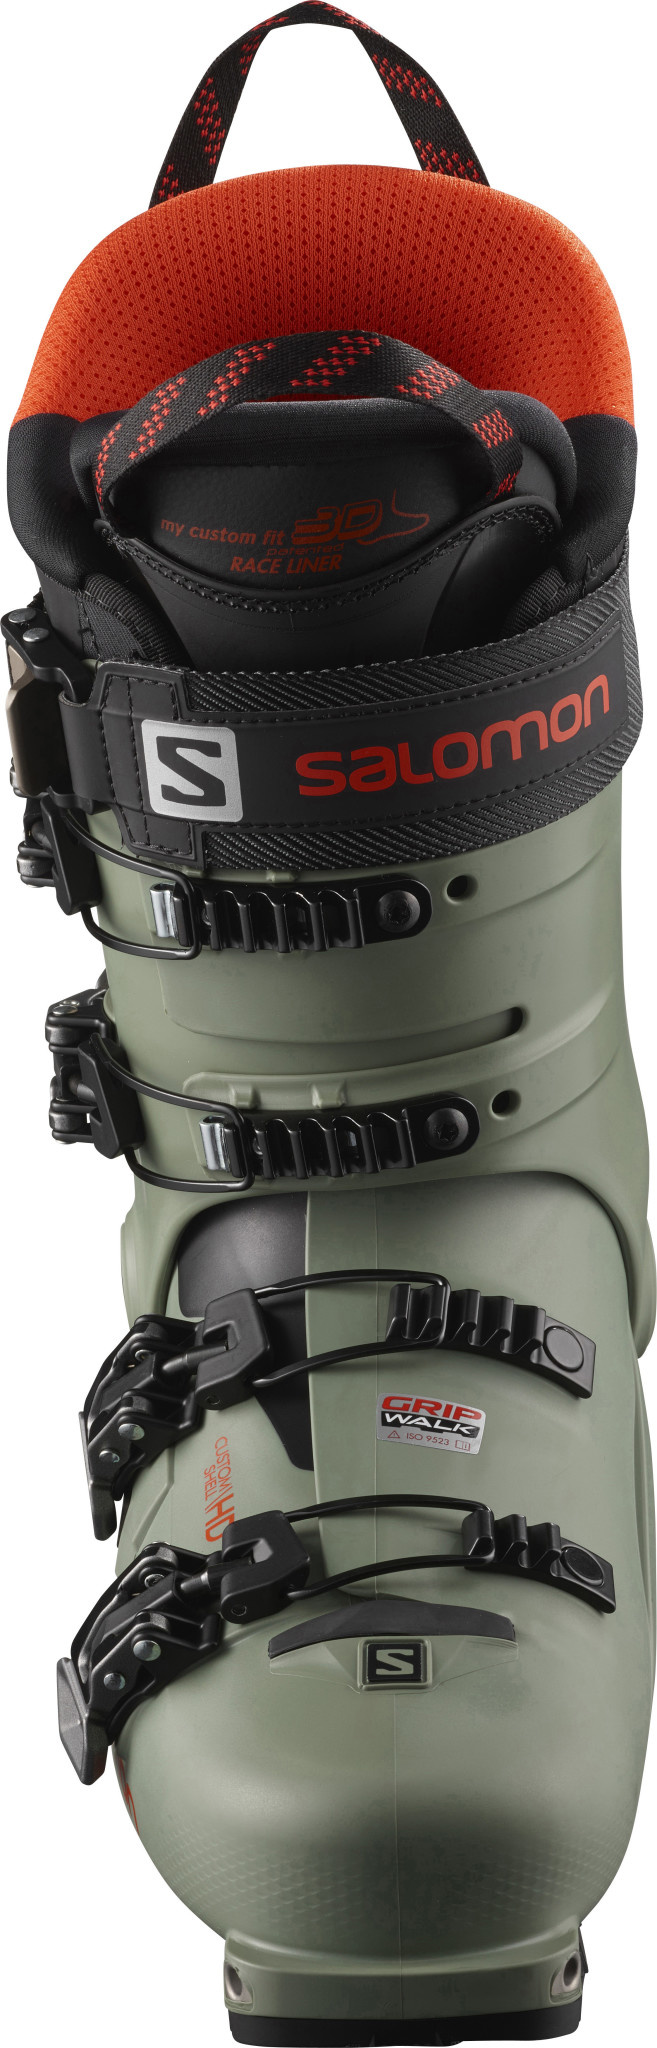 Salomon Shift Pro 130 At-3